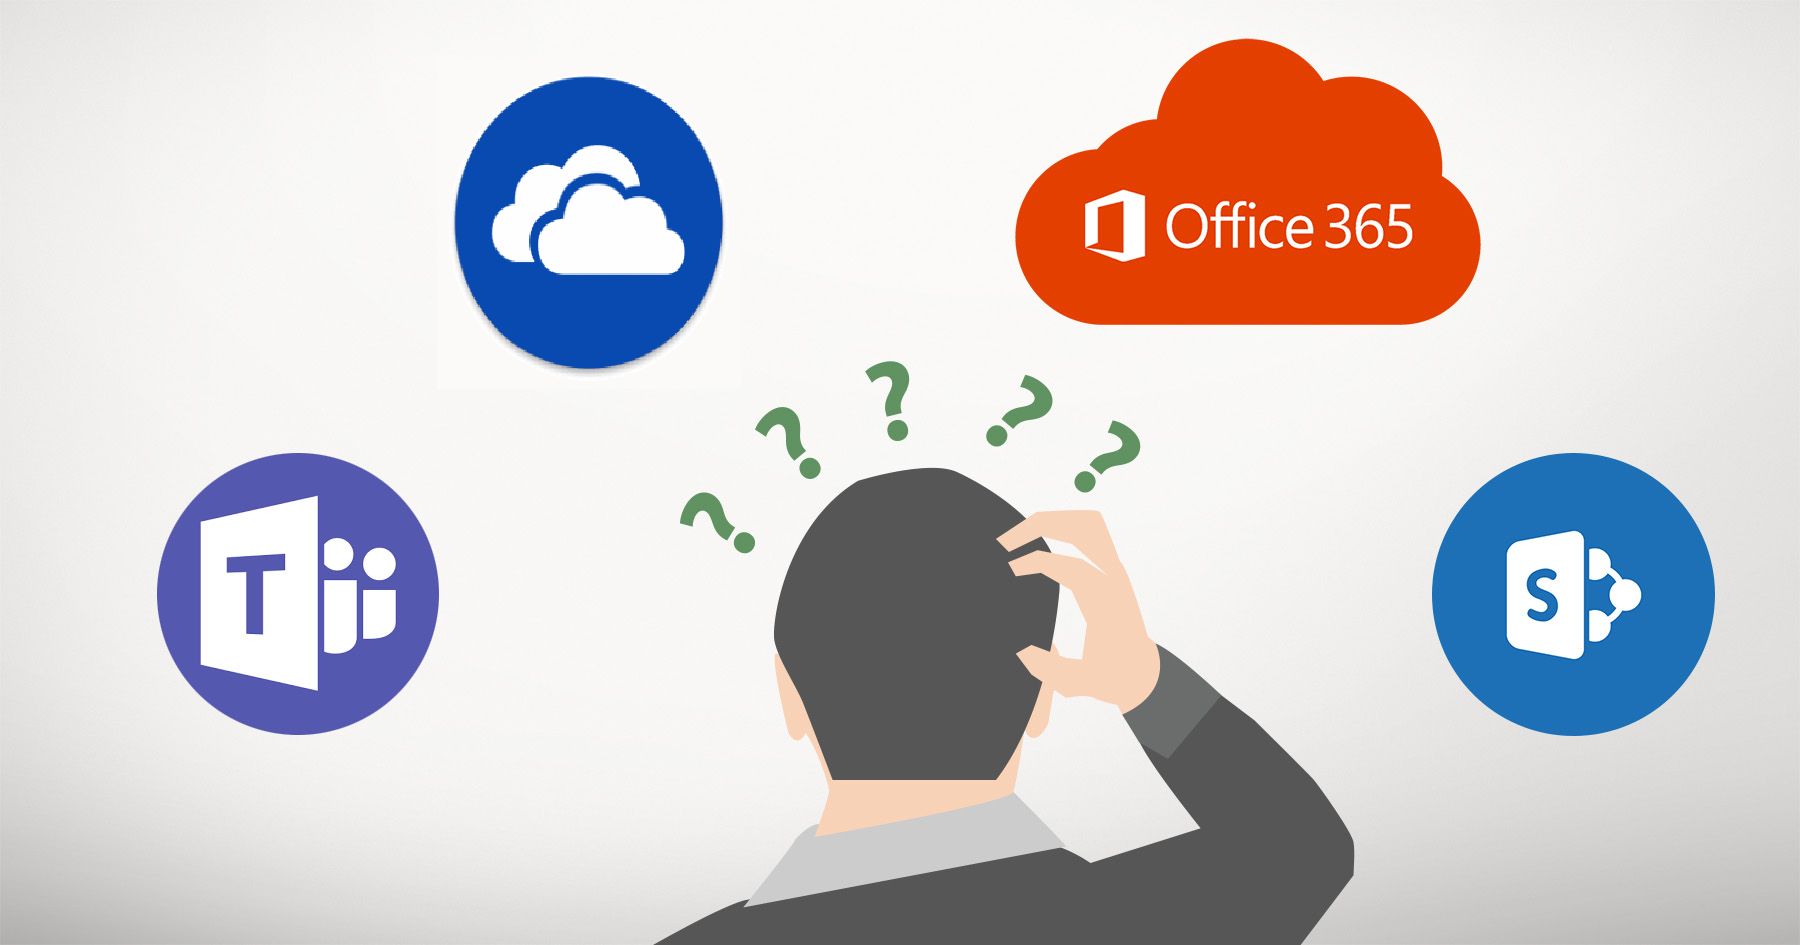 SharePoint-Teams-OneDrive